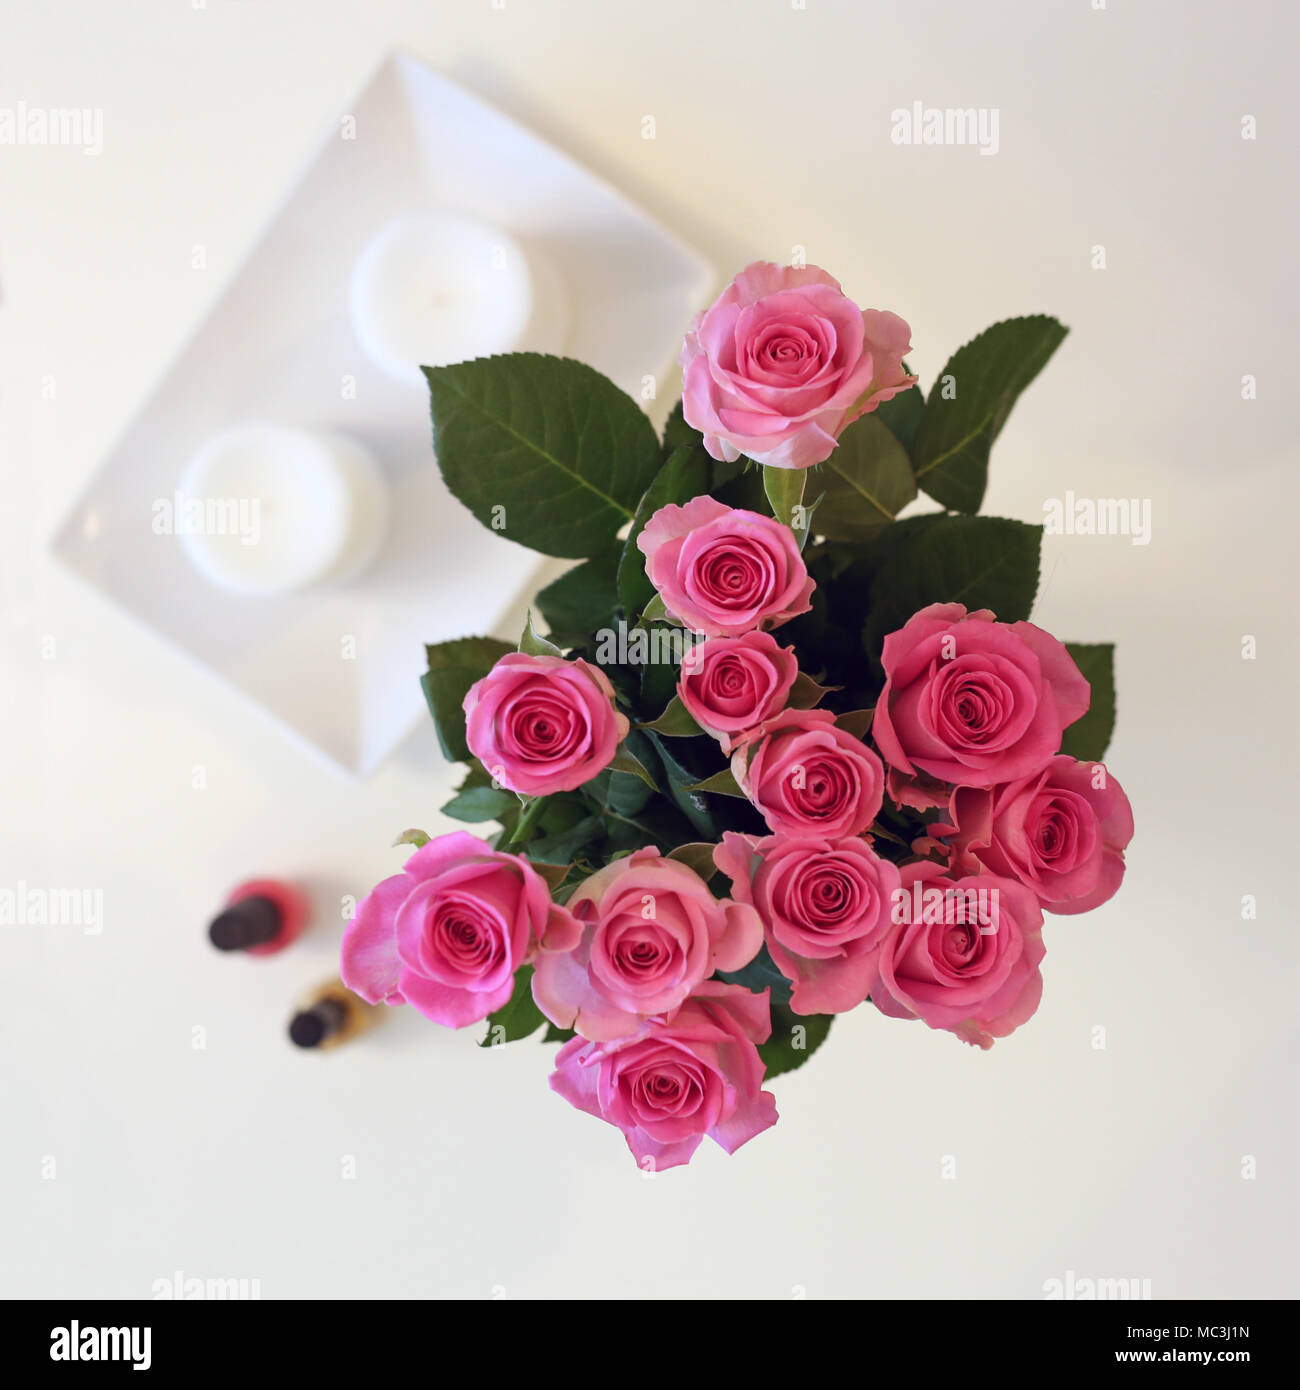 Bouquet pink roses candles on stock photos bouquet pink roses a bunch of pink flowers in a vase the photo is taken from above izmirmasajfo